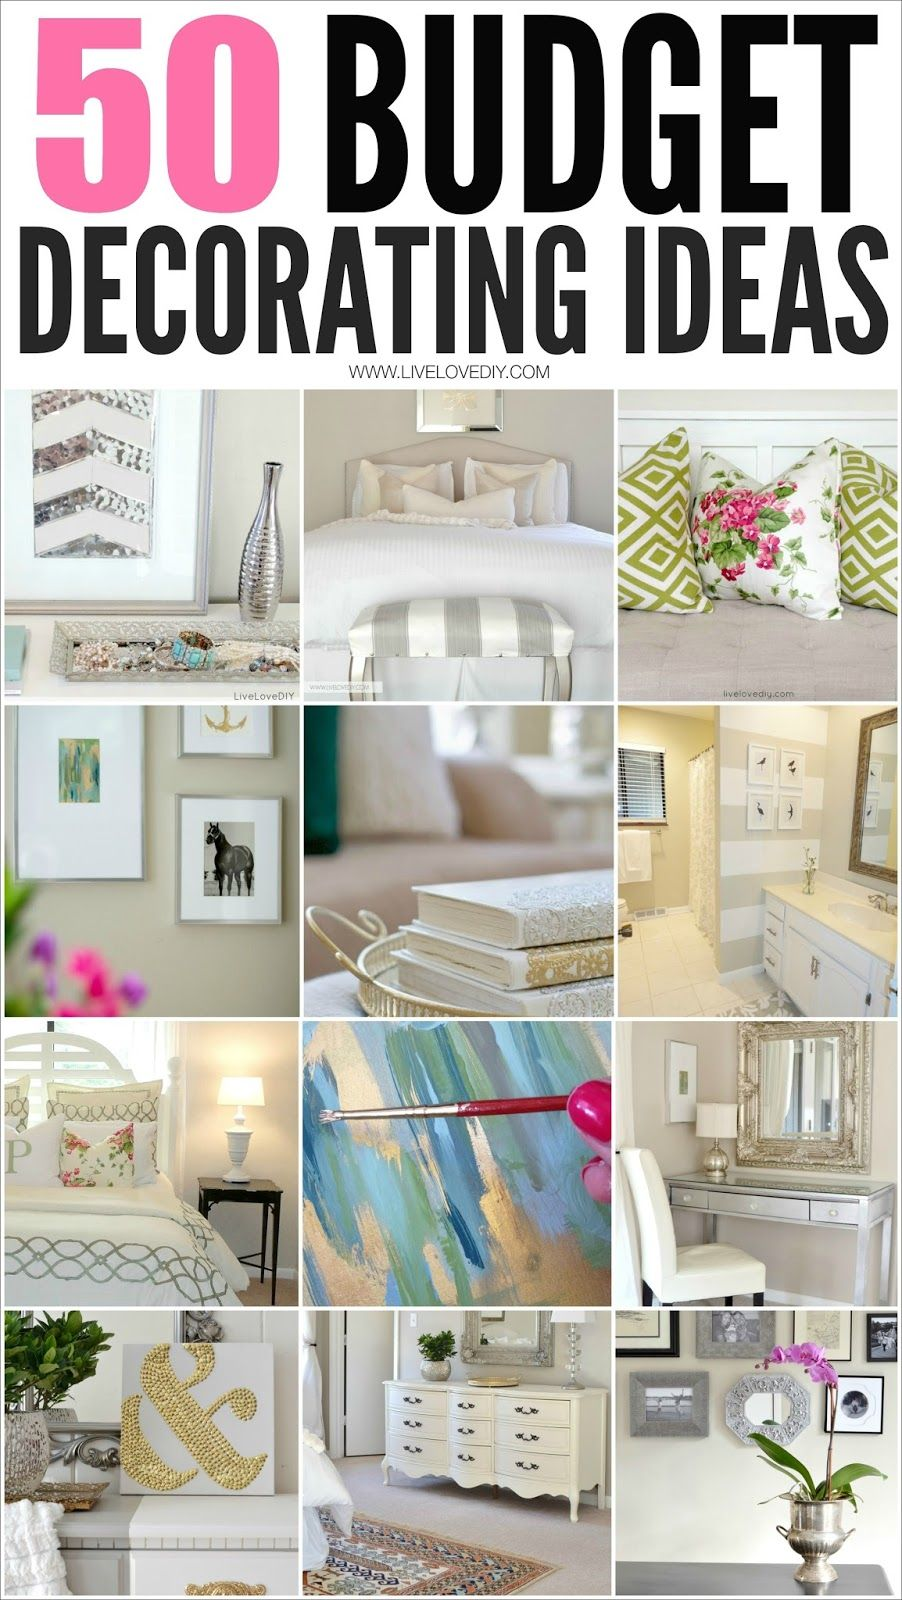 50 Budget Decorating Tips Everyone Should Know I Especially Love 4